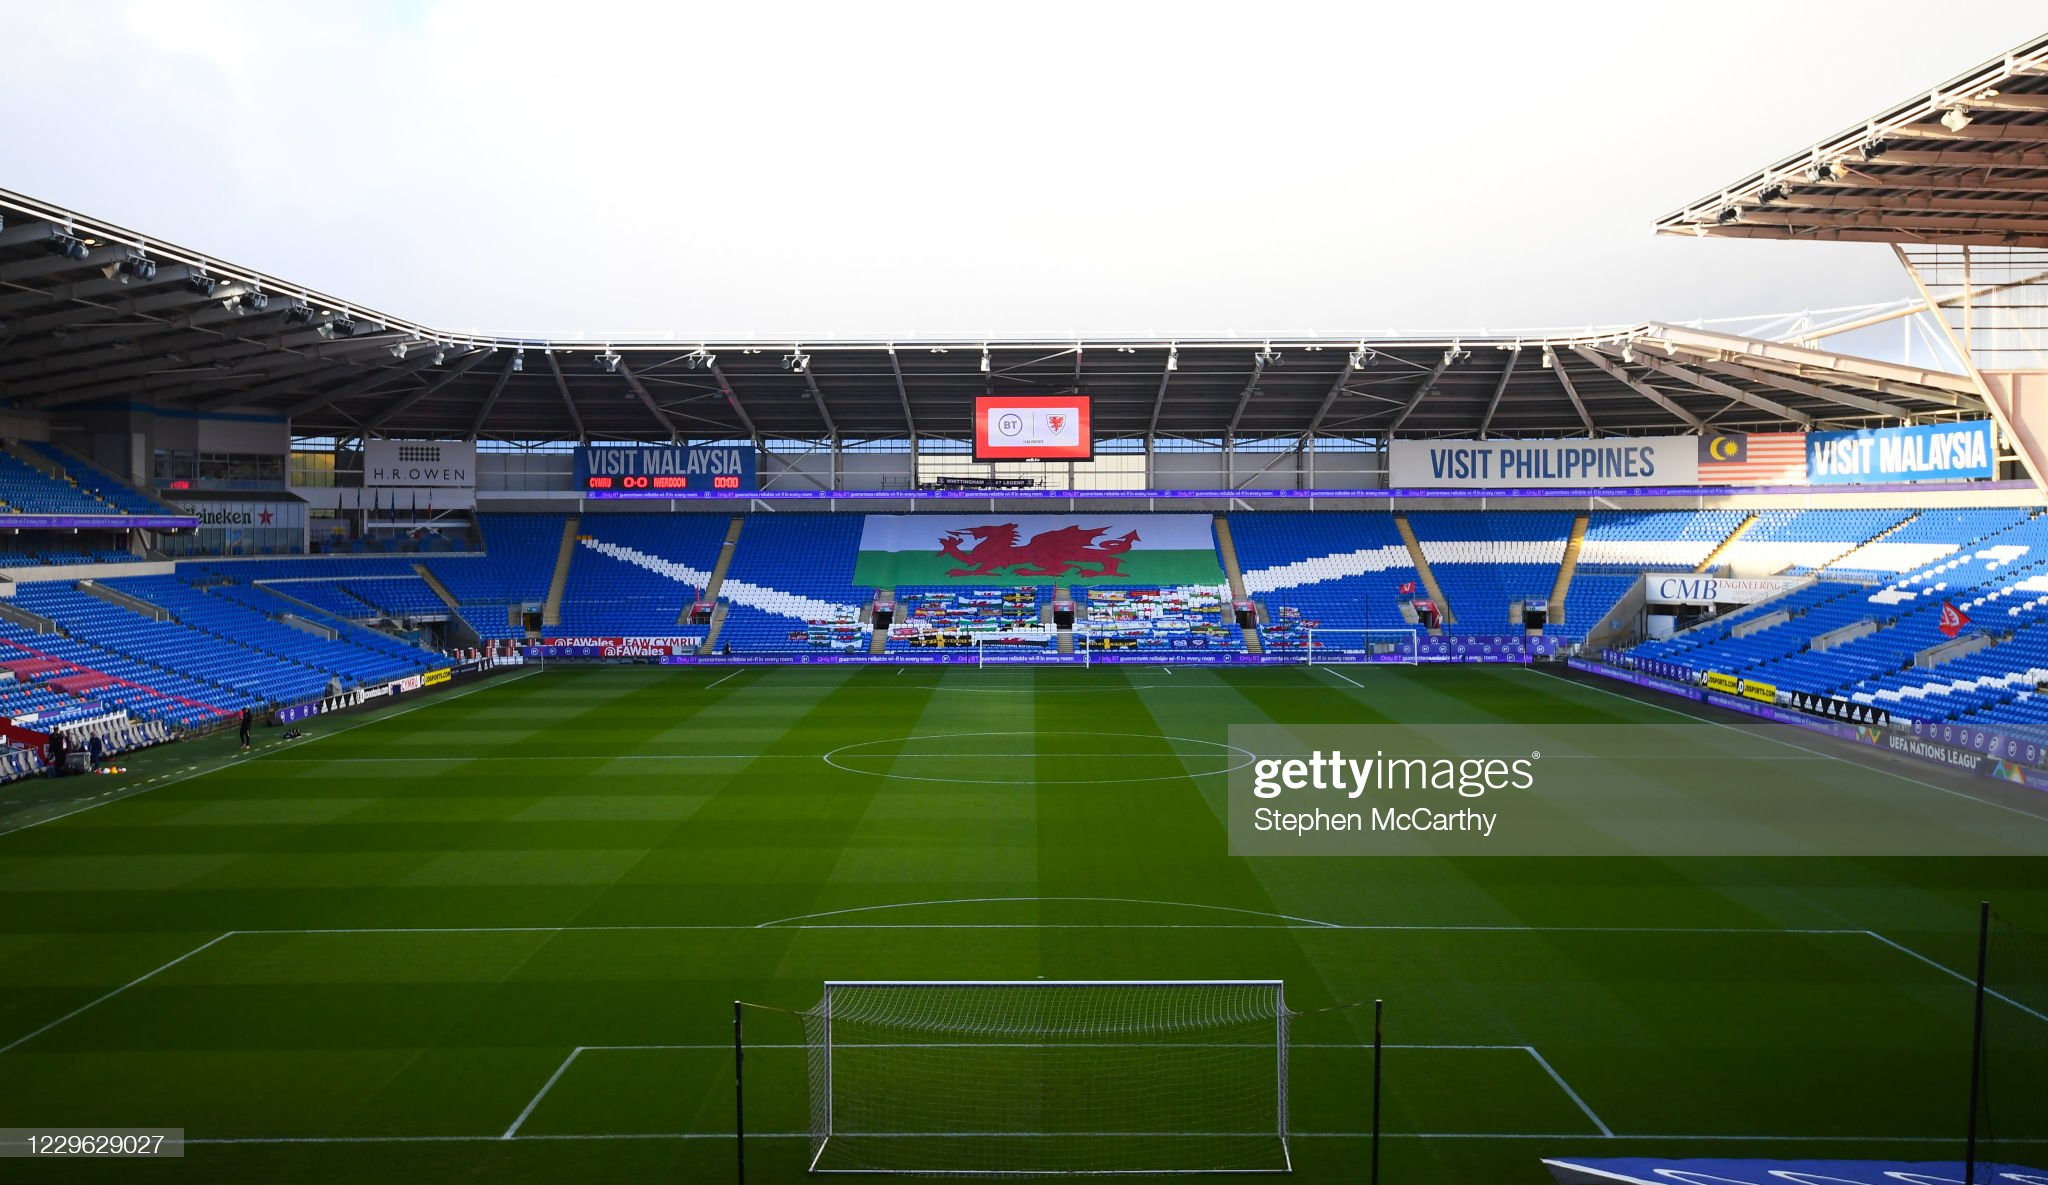 Wales vs Czech Republic Preview, prediction and odds